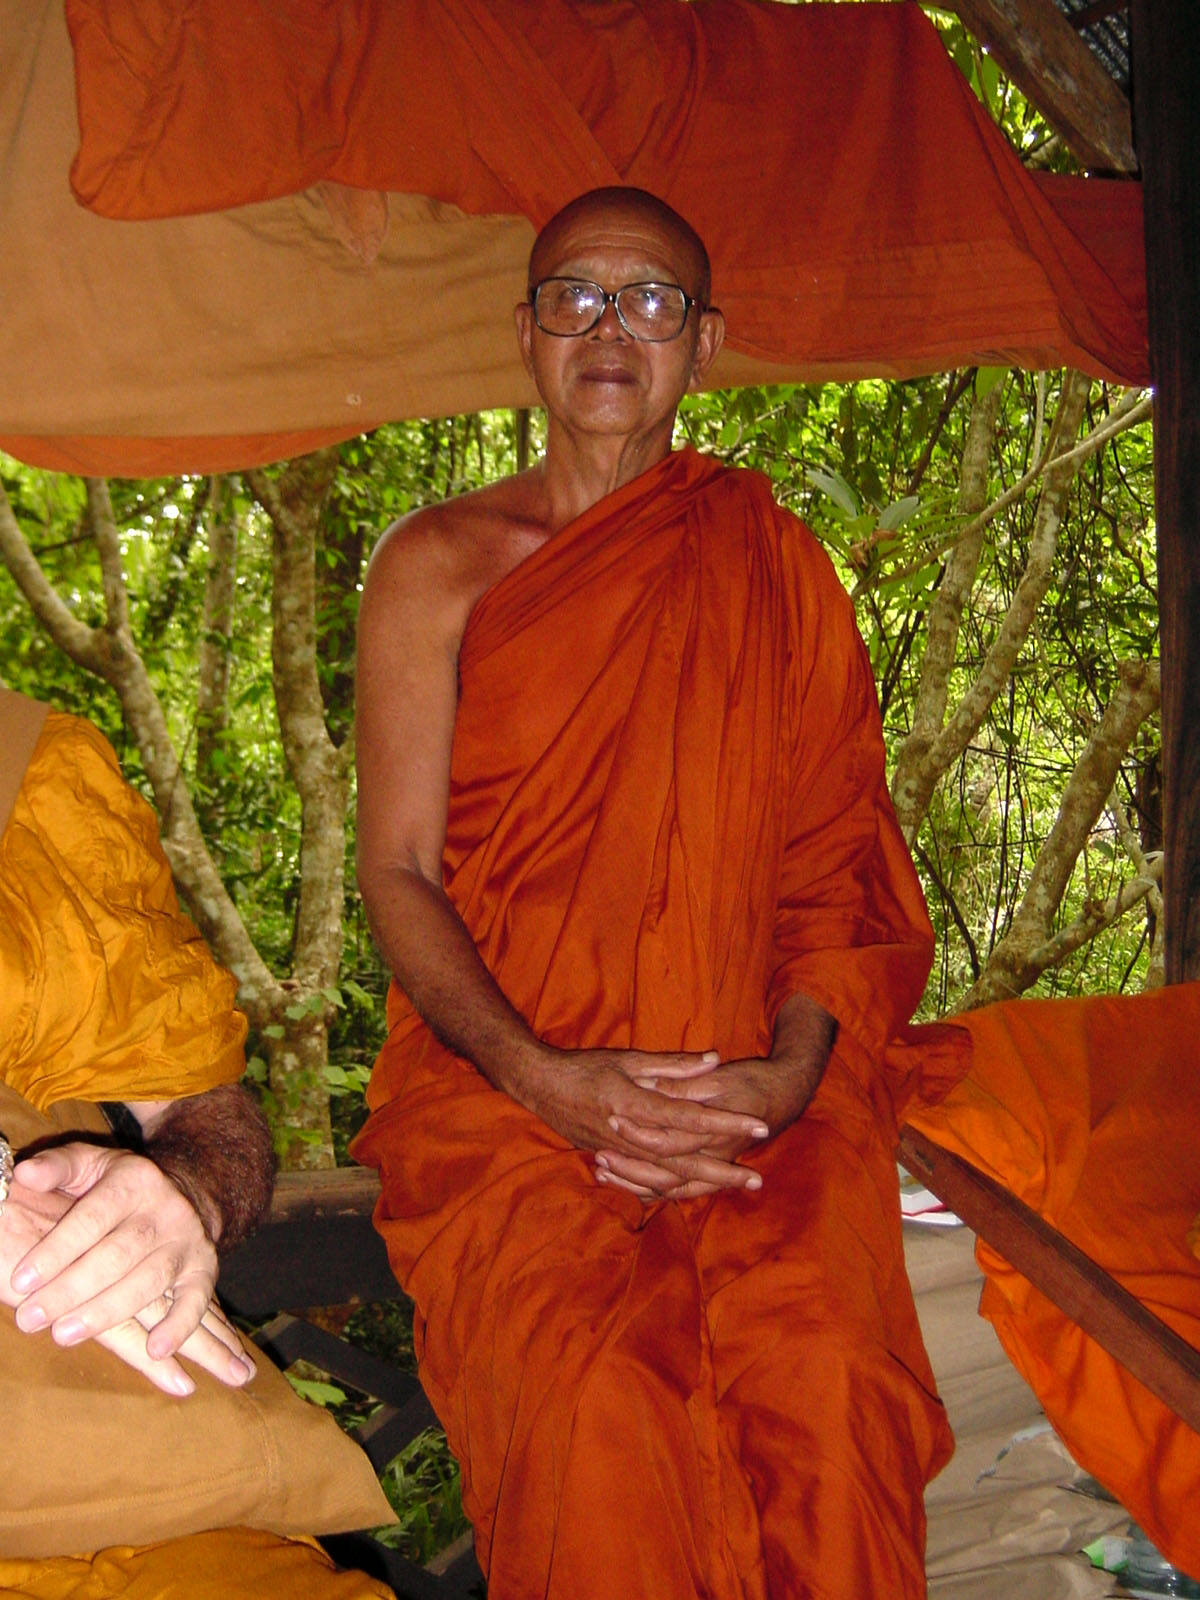 Buddhist Pilgrimage Southern Thailand Apr 2001 25